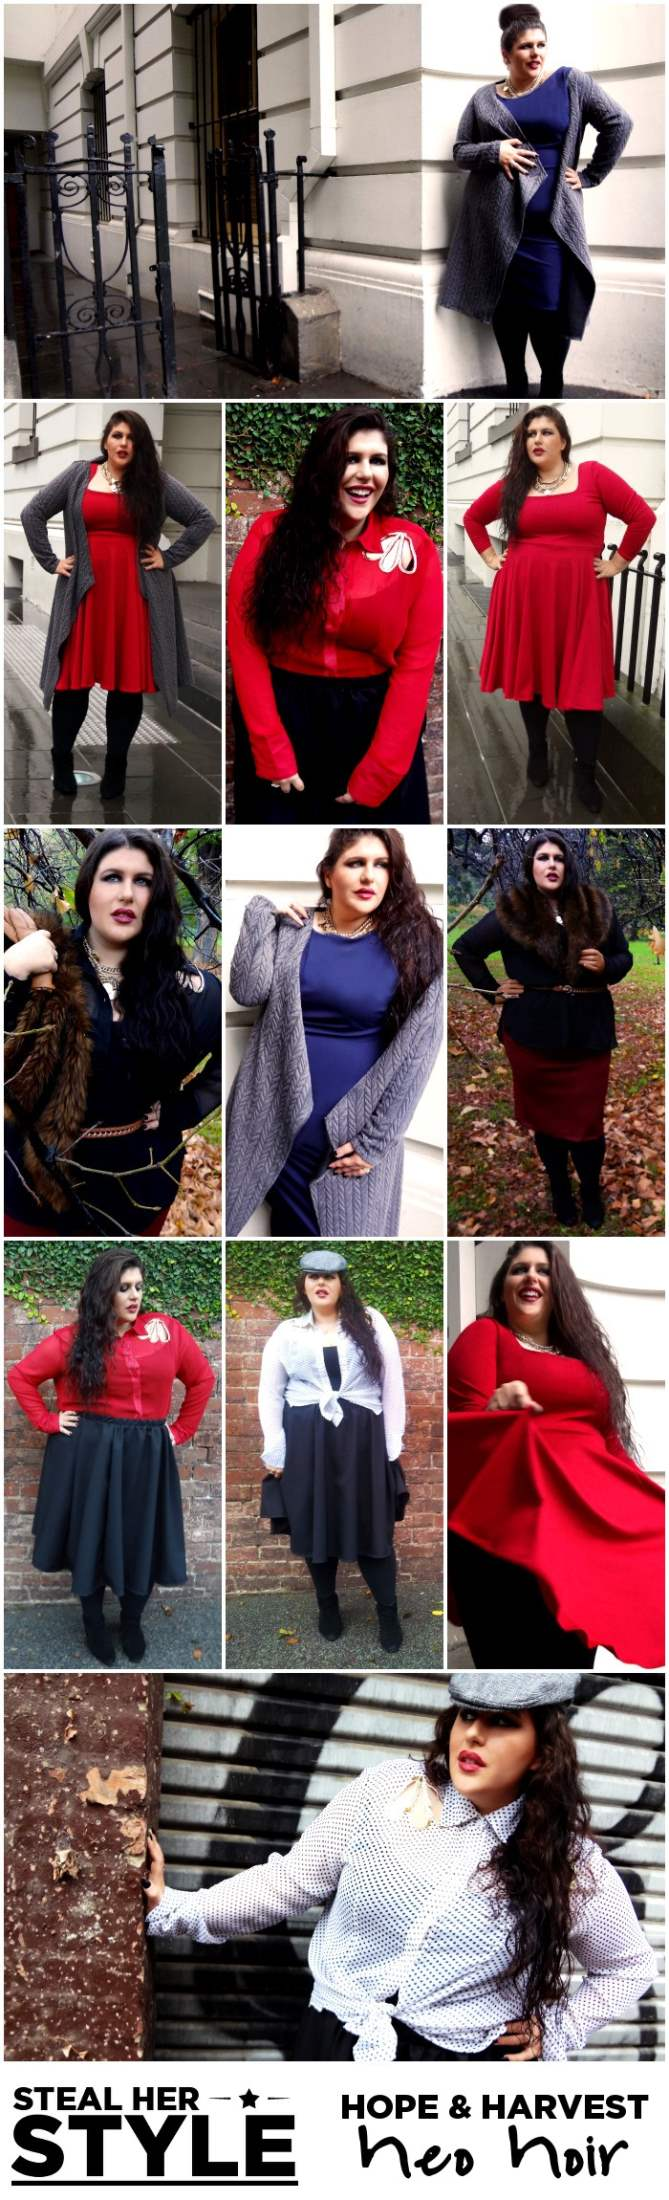 Hope + Harvest Neo Noir AW 14 Plus-Size Collection.jpg